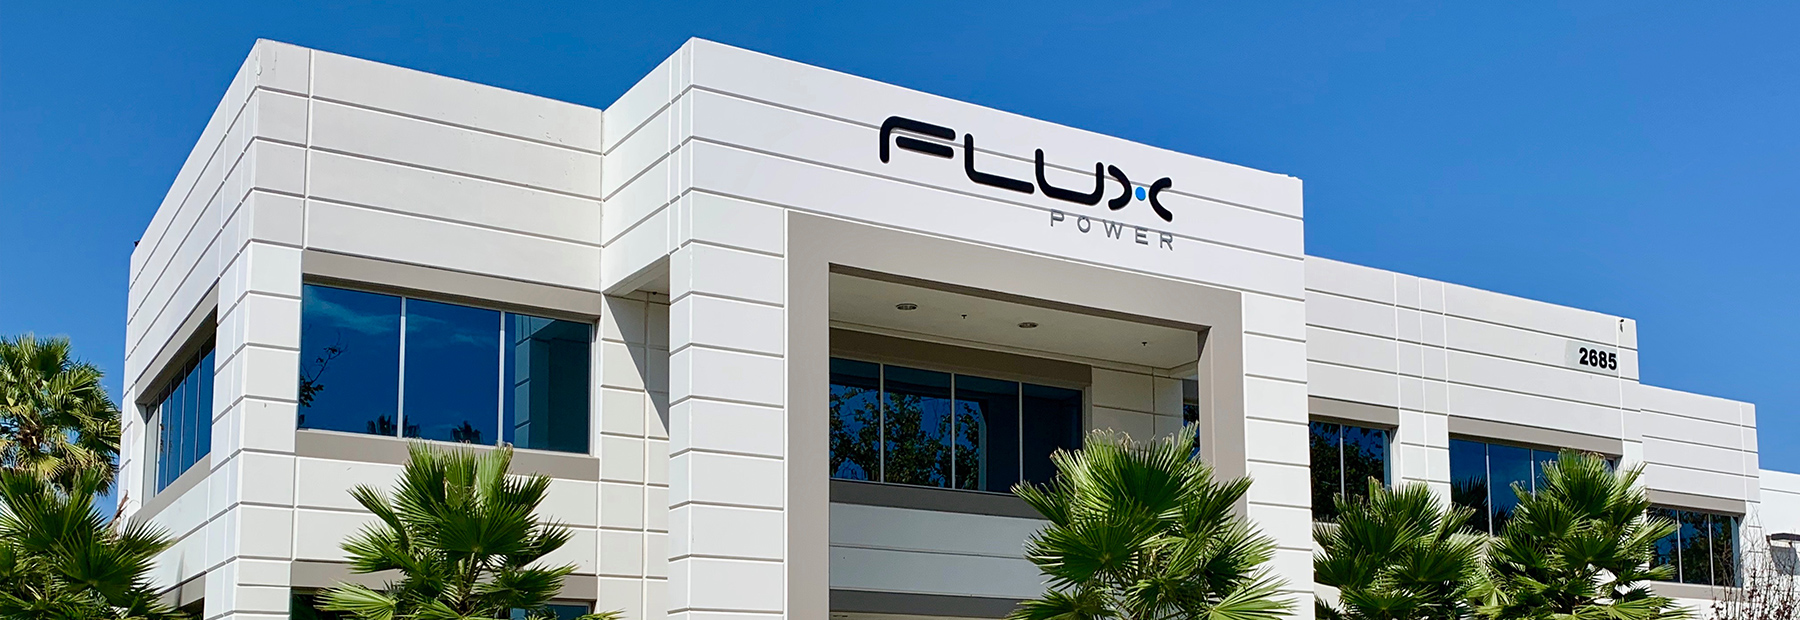 Flux-Power-New-Building-front